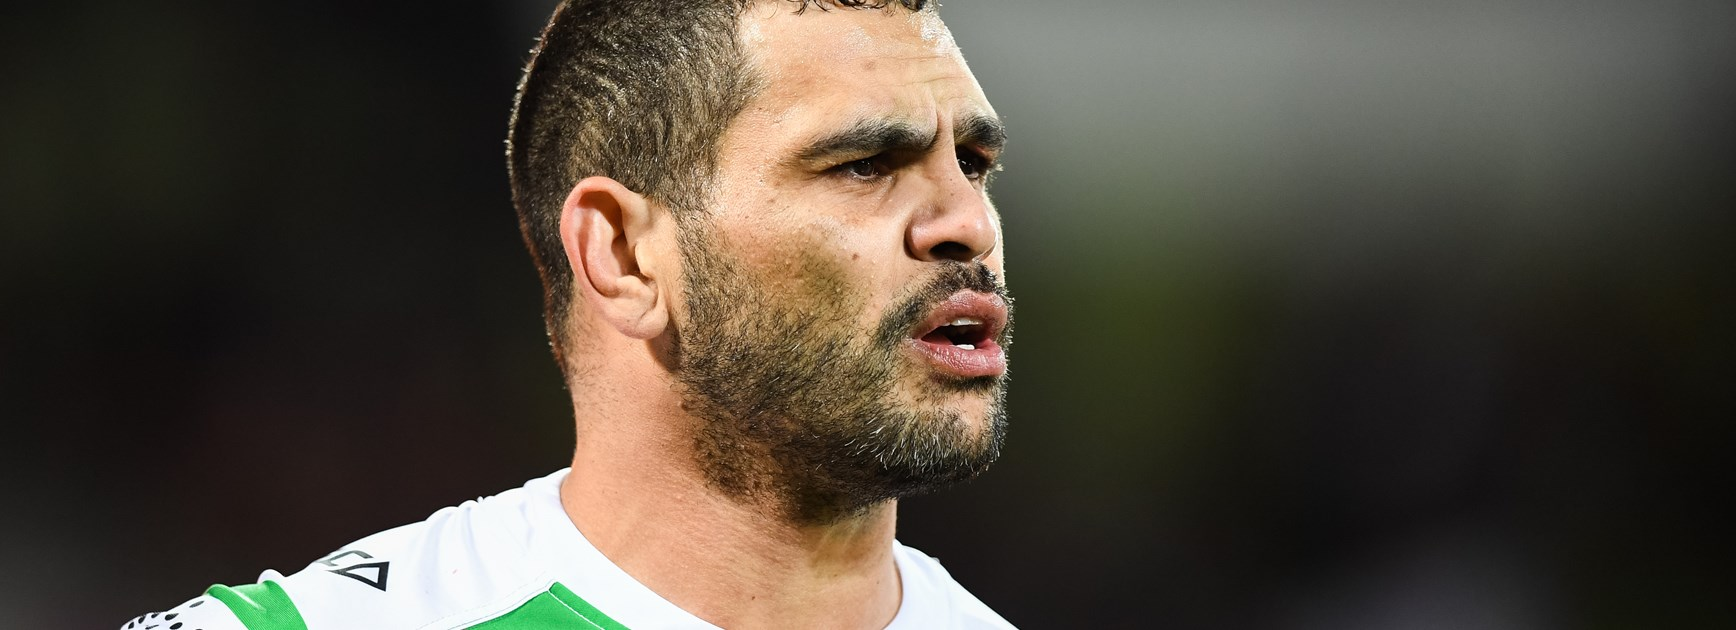 Rabbitohs star Greg Inglis.